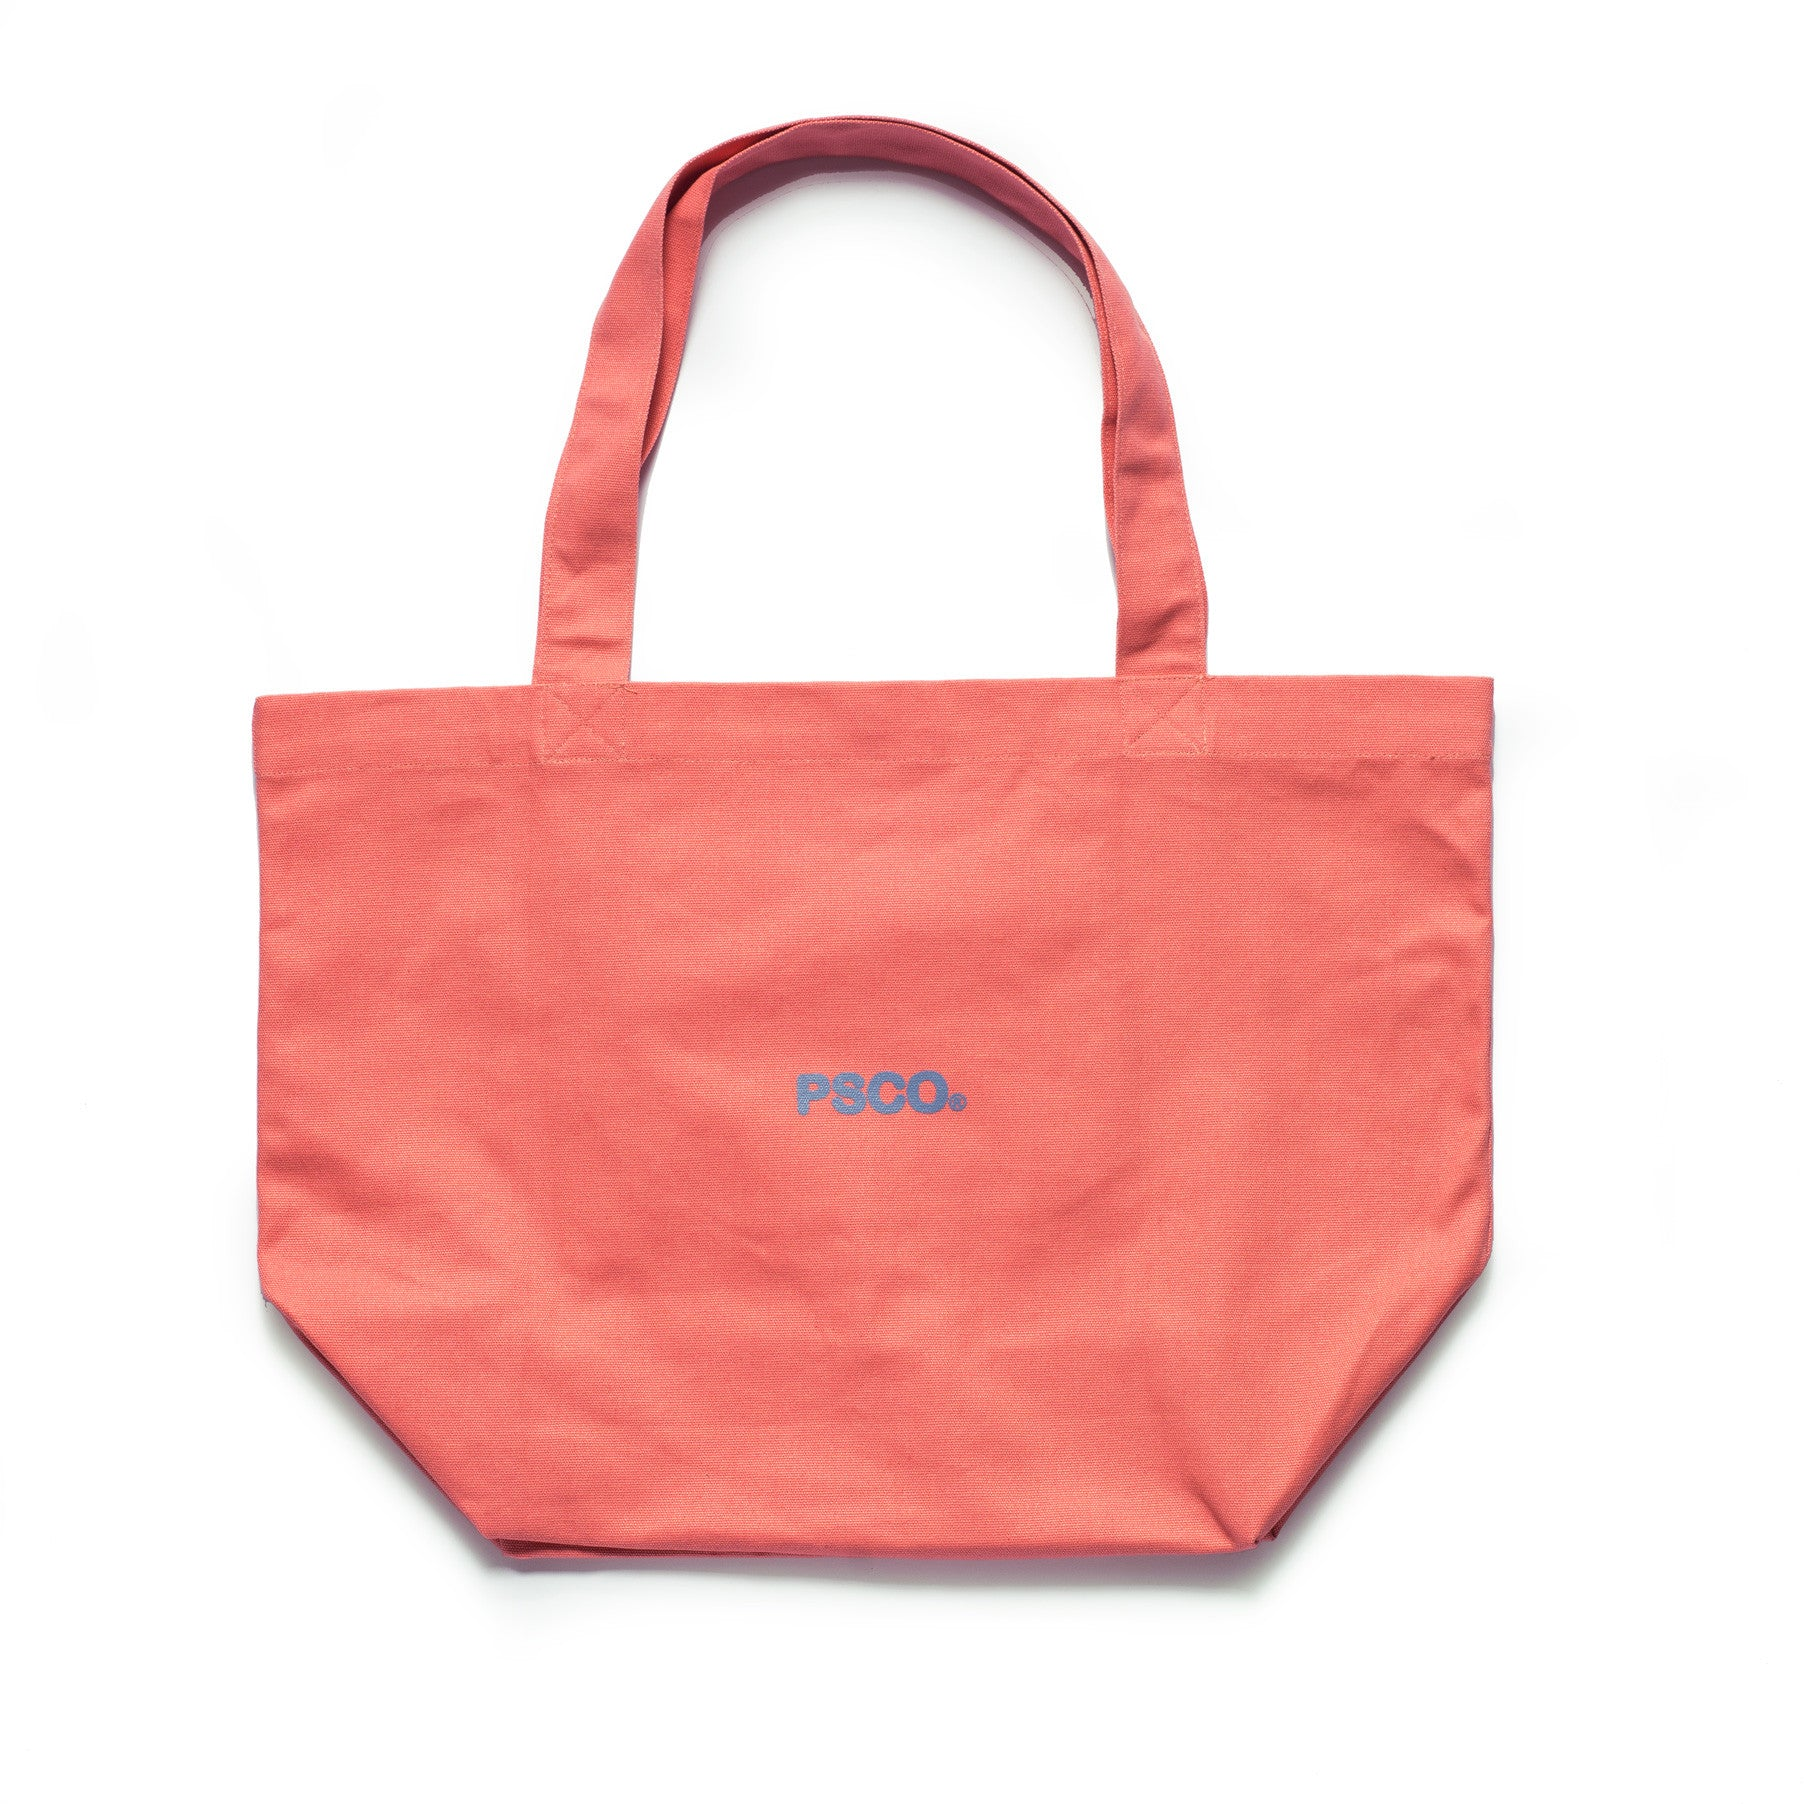 Tote Bag - Daily Supplements - Coral